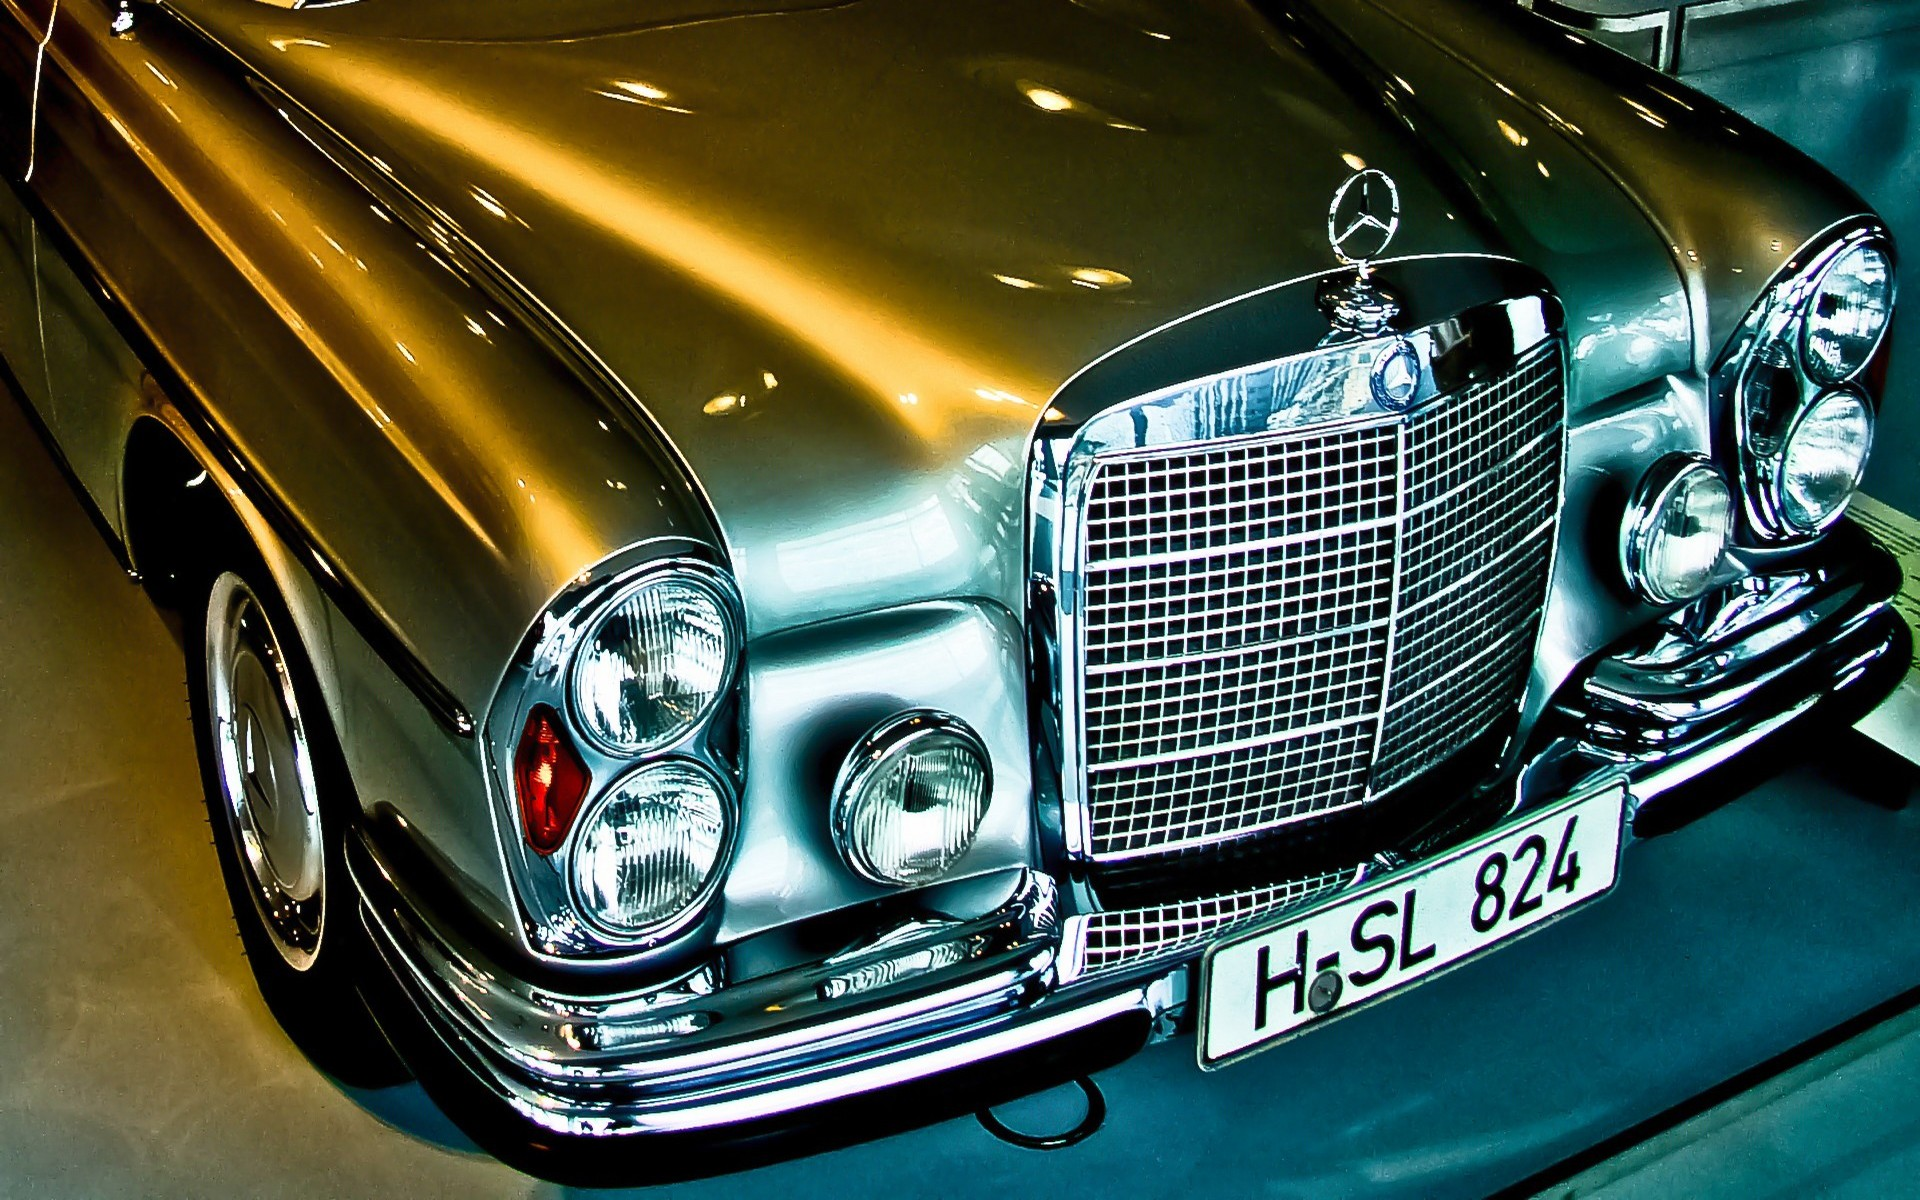 Car 5760x1080 Wallpaper Mercedes Benz Car Old Car 300 Sel 6 3 Wallpapers Hd